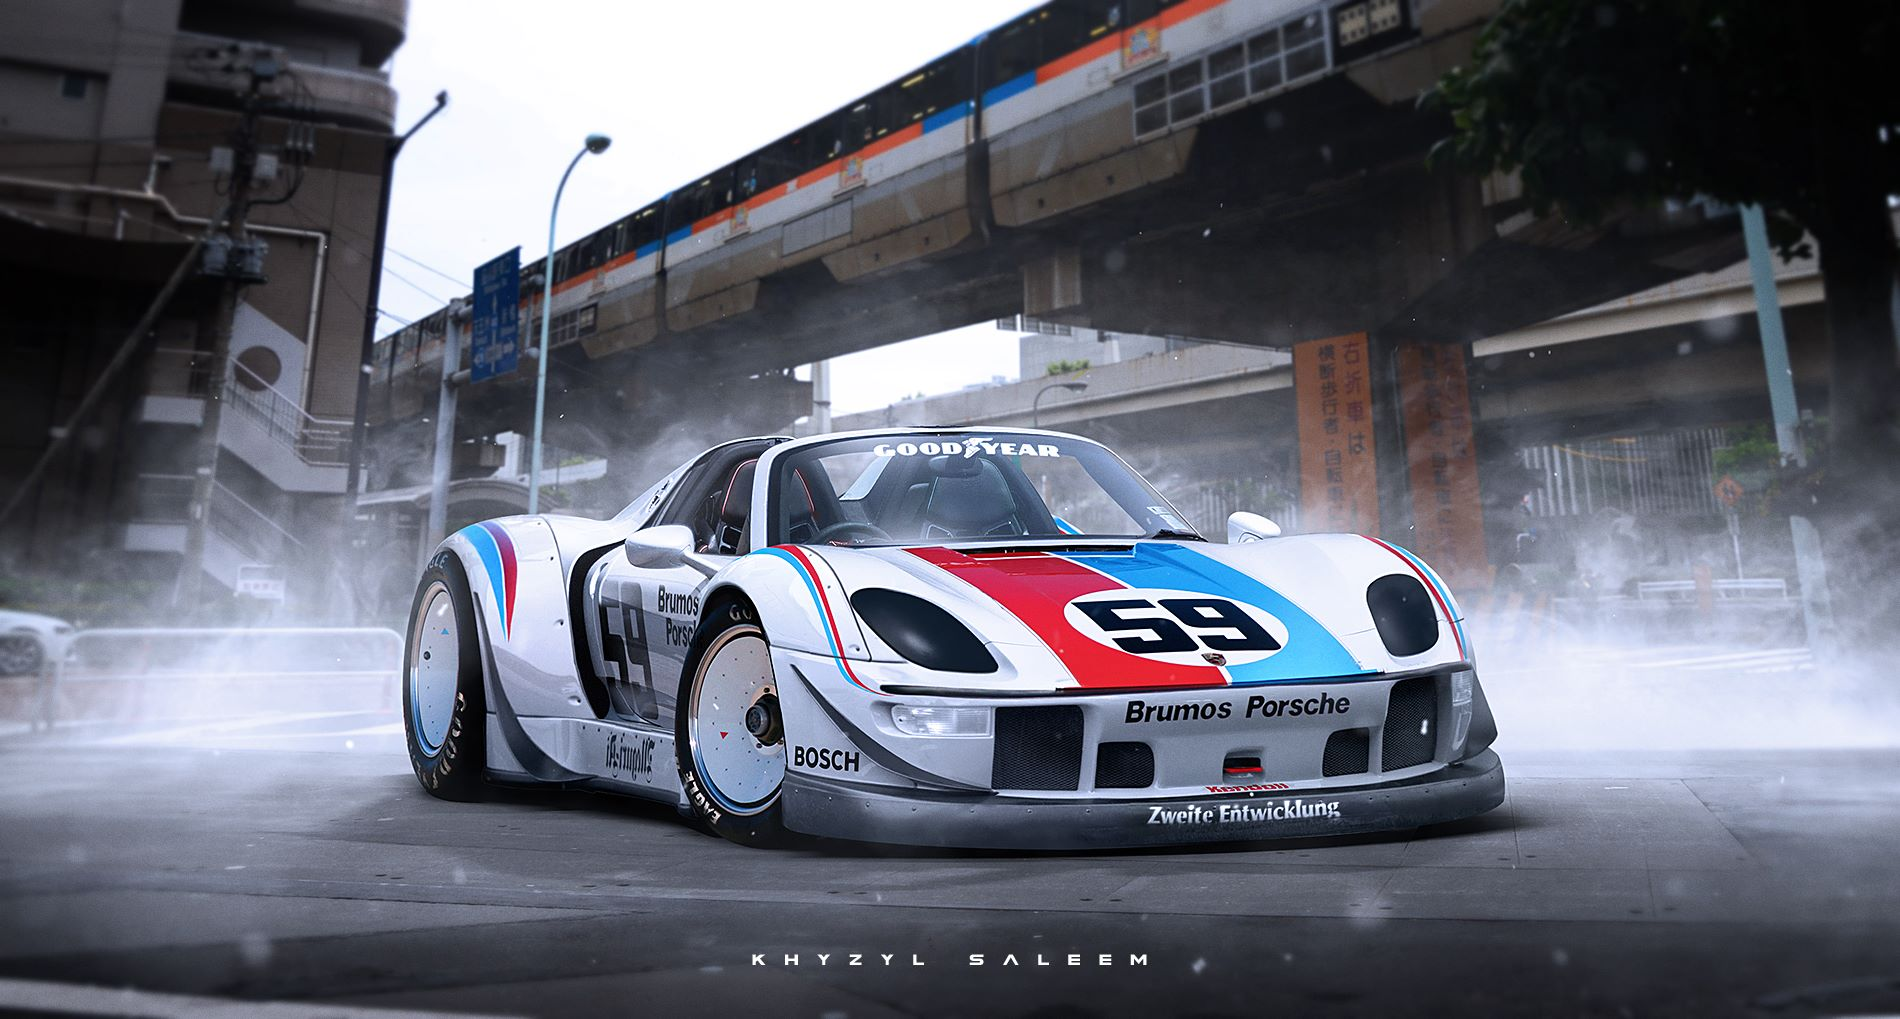 porsche 918 spyder gets rauh welt begriff body kit in extremely wild renderin. Black Bedroom Furniture Sets. Home Design Ideas